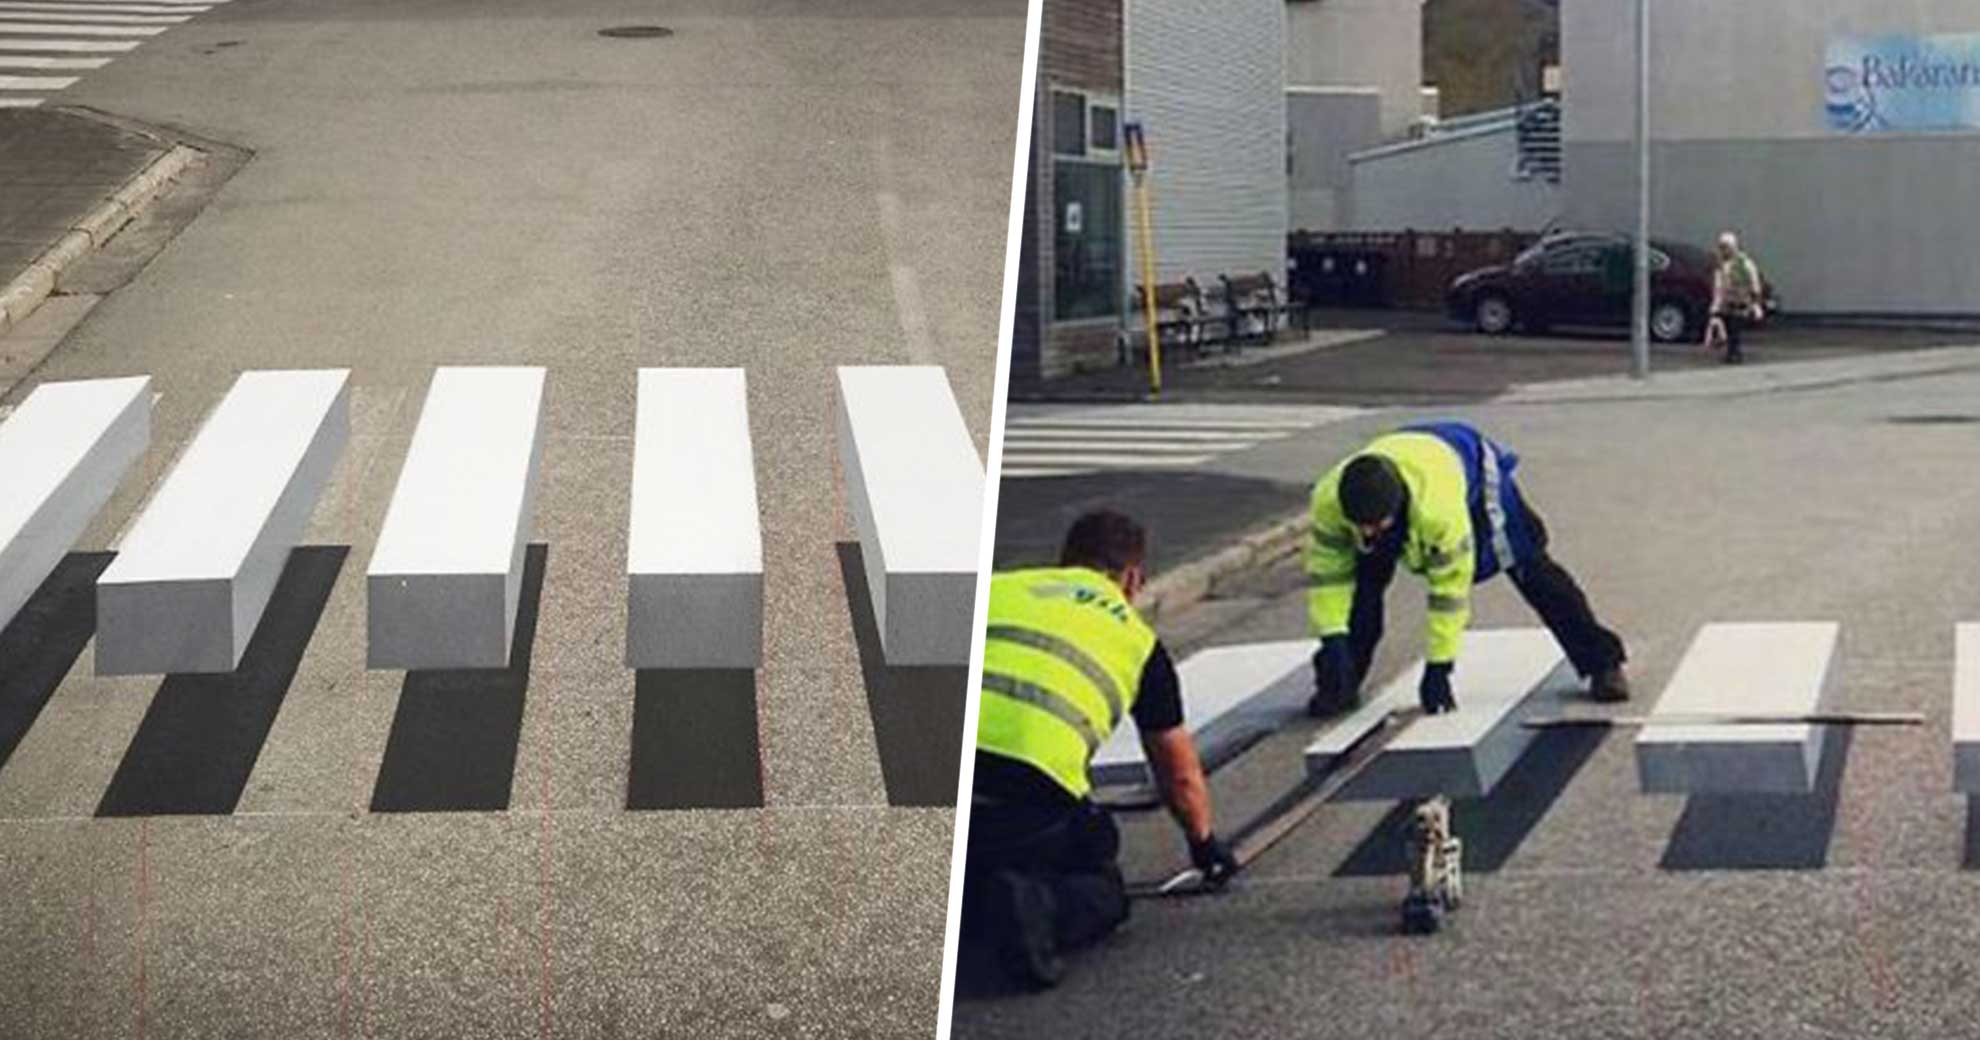 A Town In Iceland Created An Insane 3D Crosswalk To Slow Down Drivers